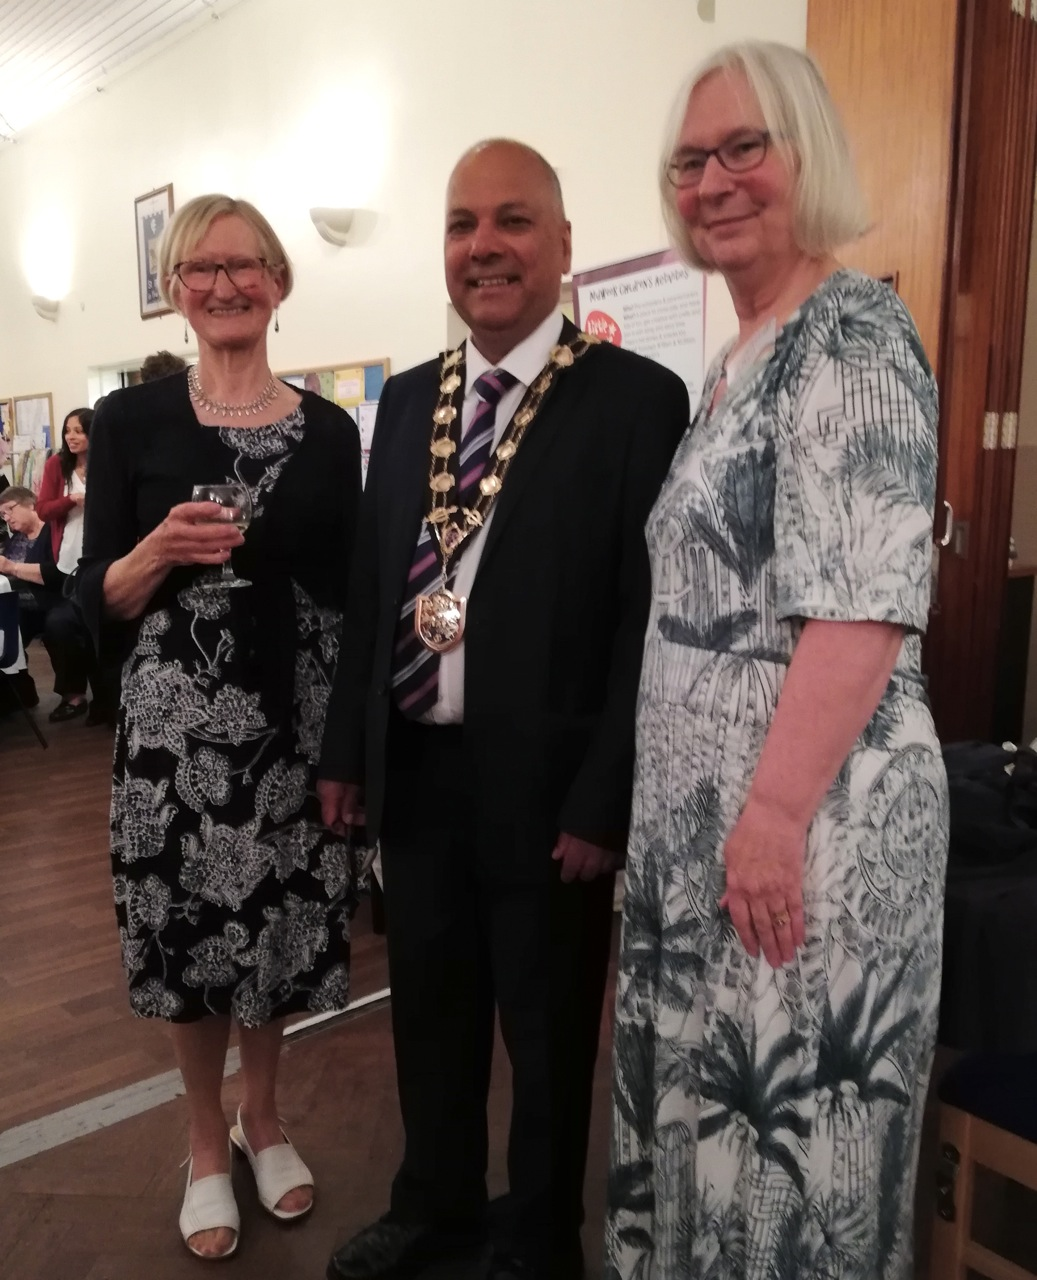 Eastleigh's Mayor Councillor Darshan Mann with Tricia Urquhart and Sue Moll.